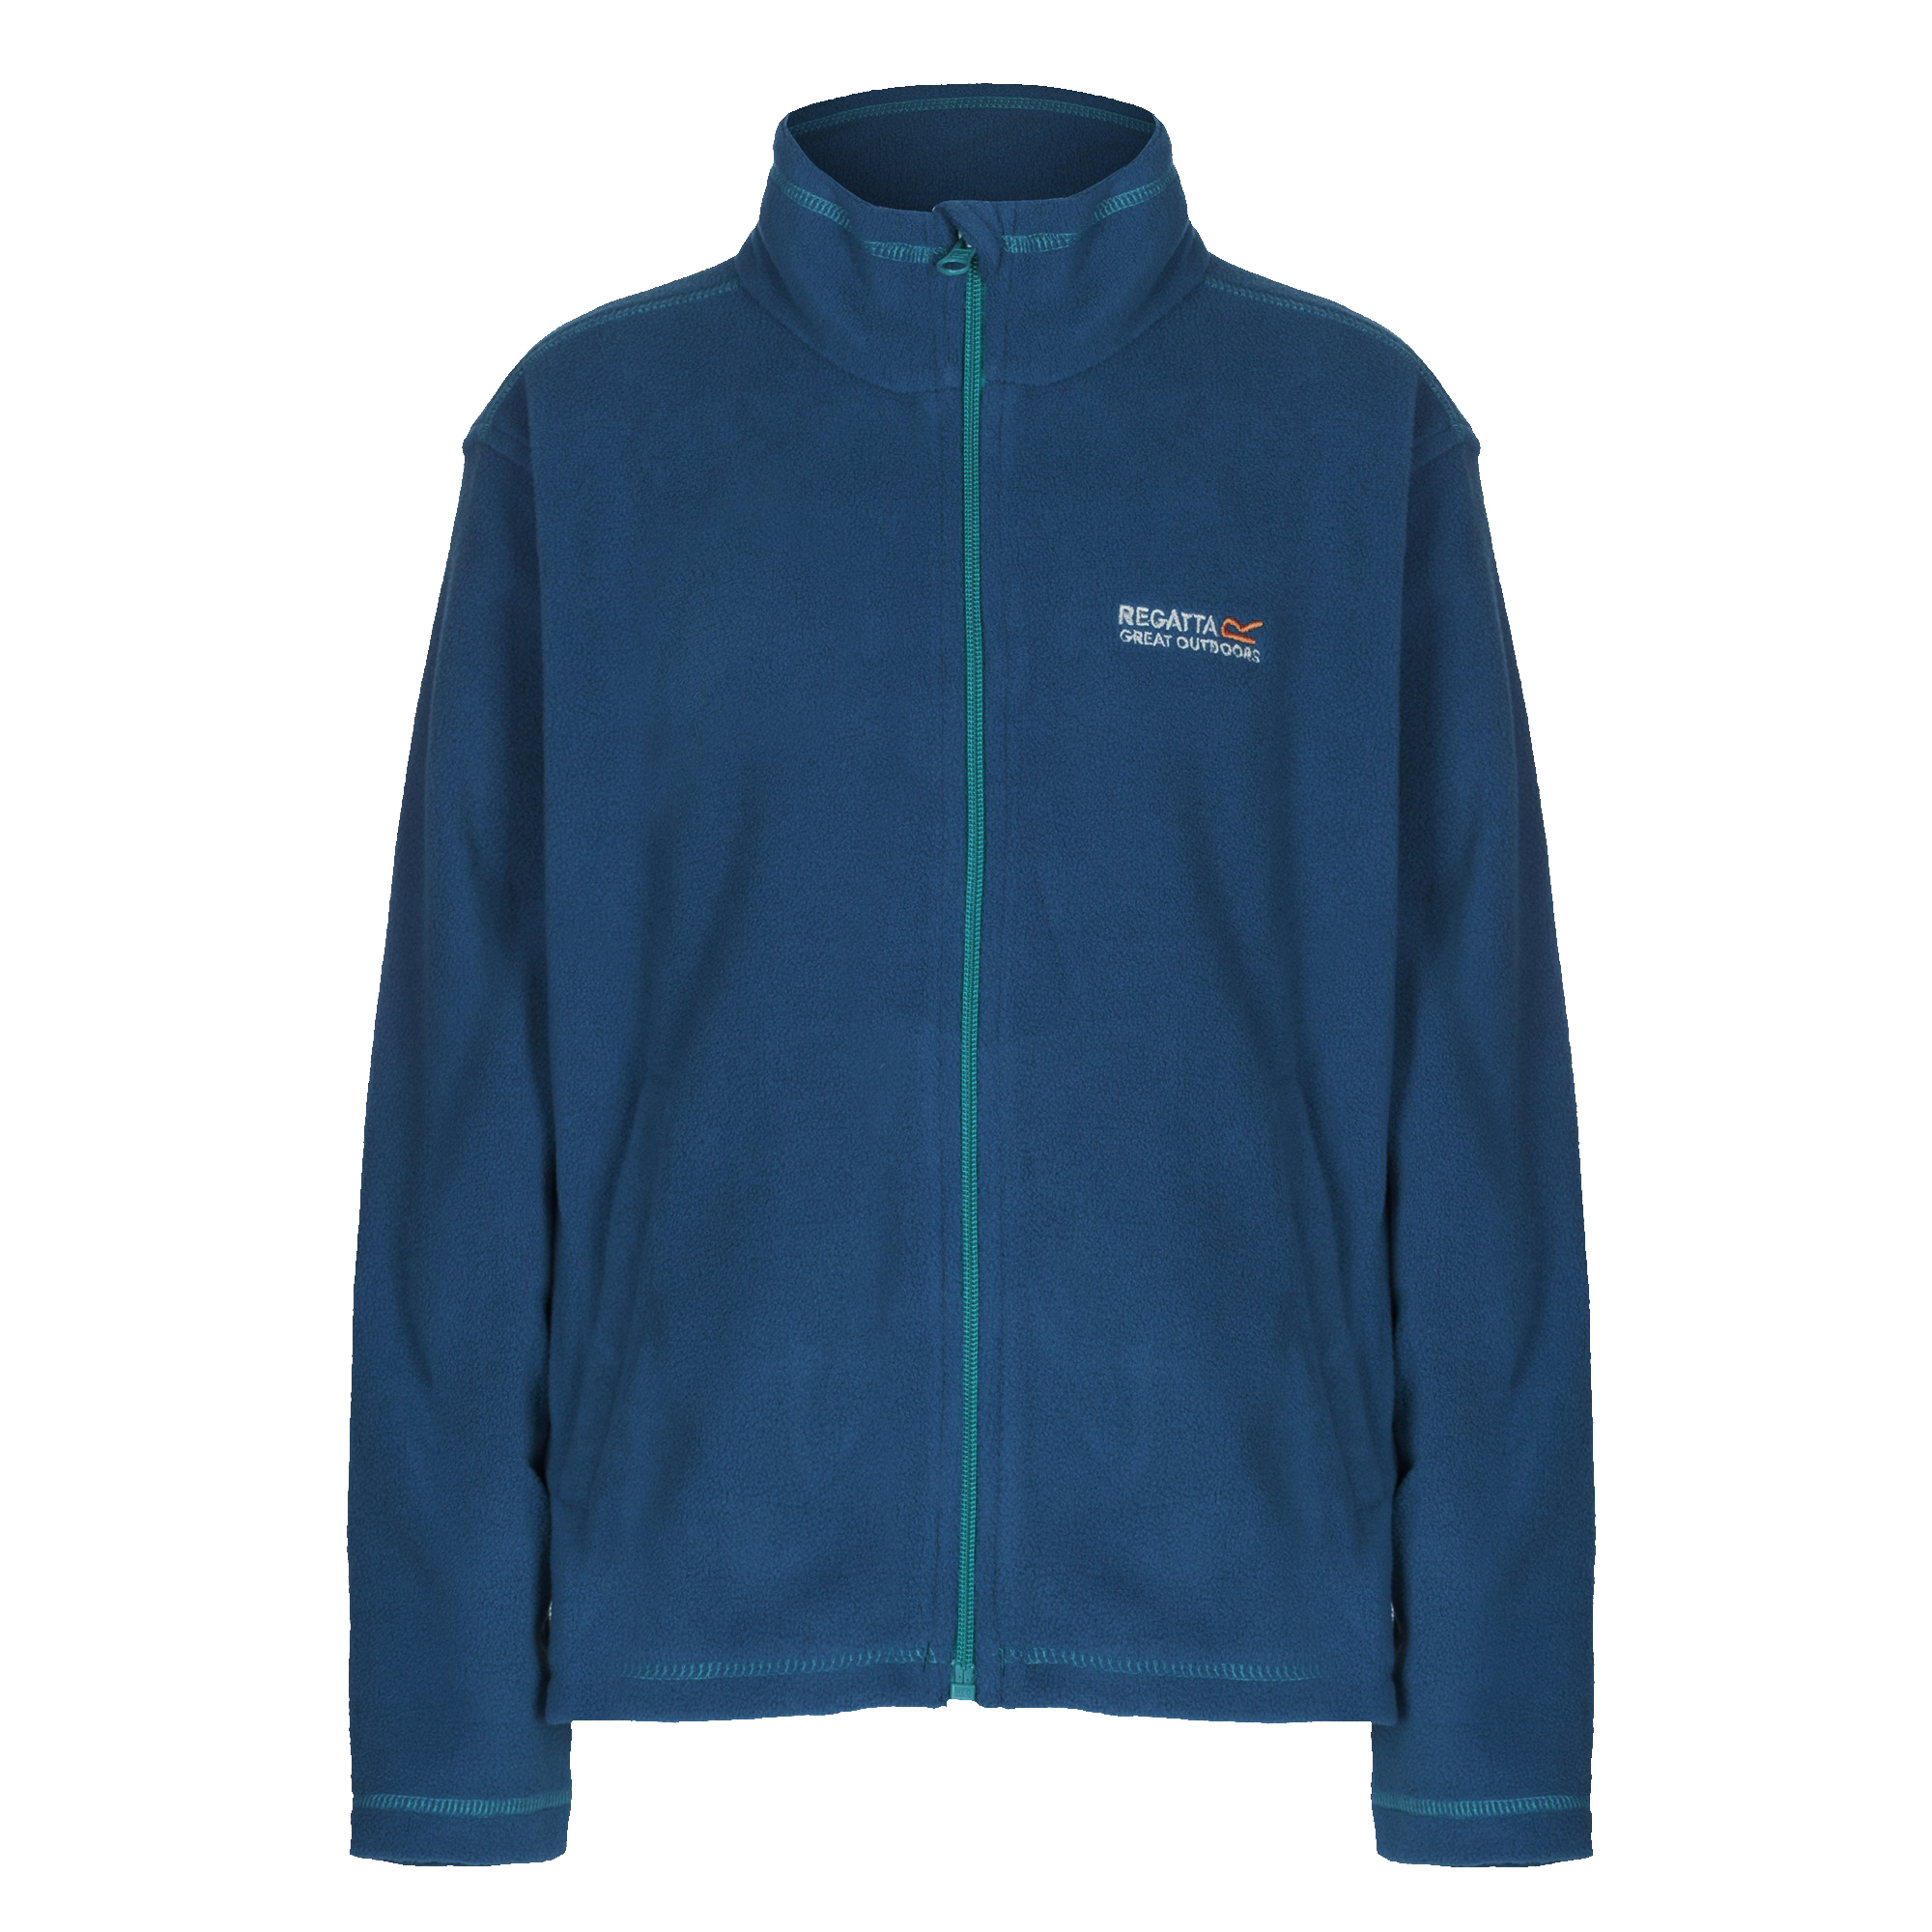 RG565 Regatta Great Outdoors Kinder Fleece Jacke King II